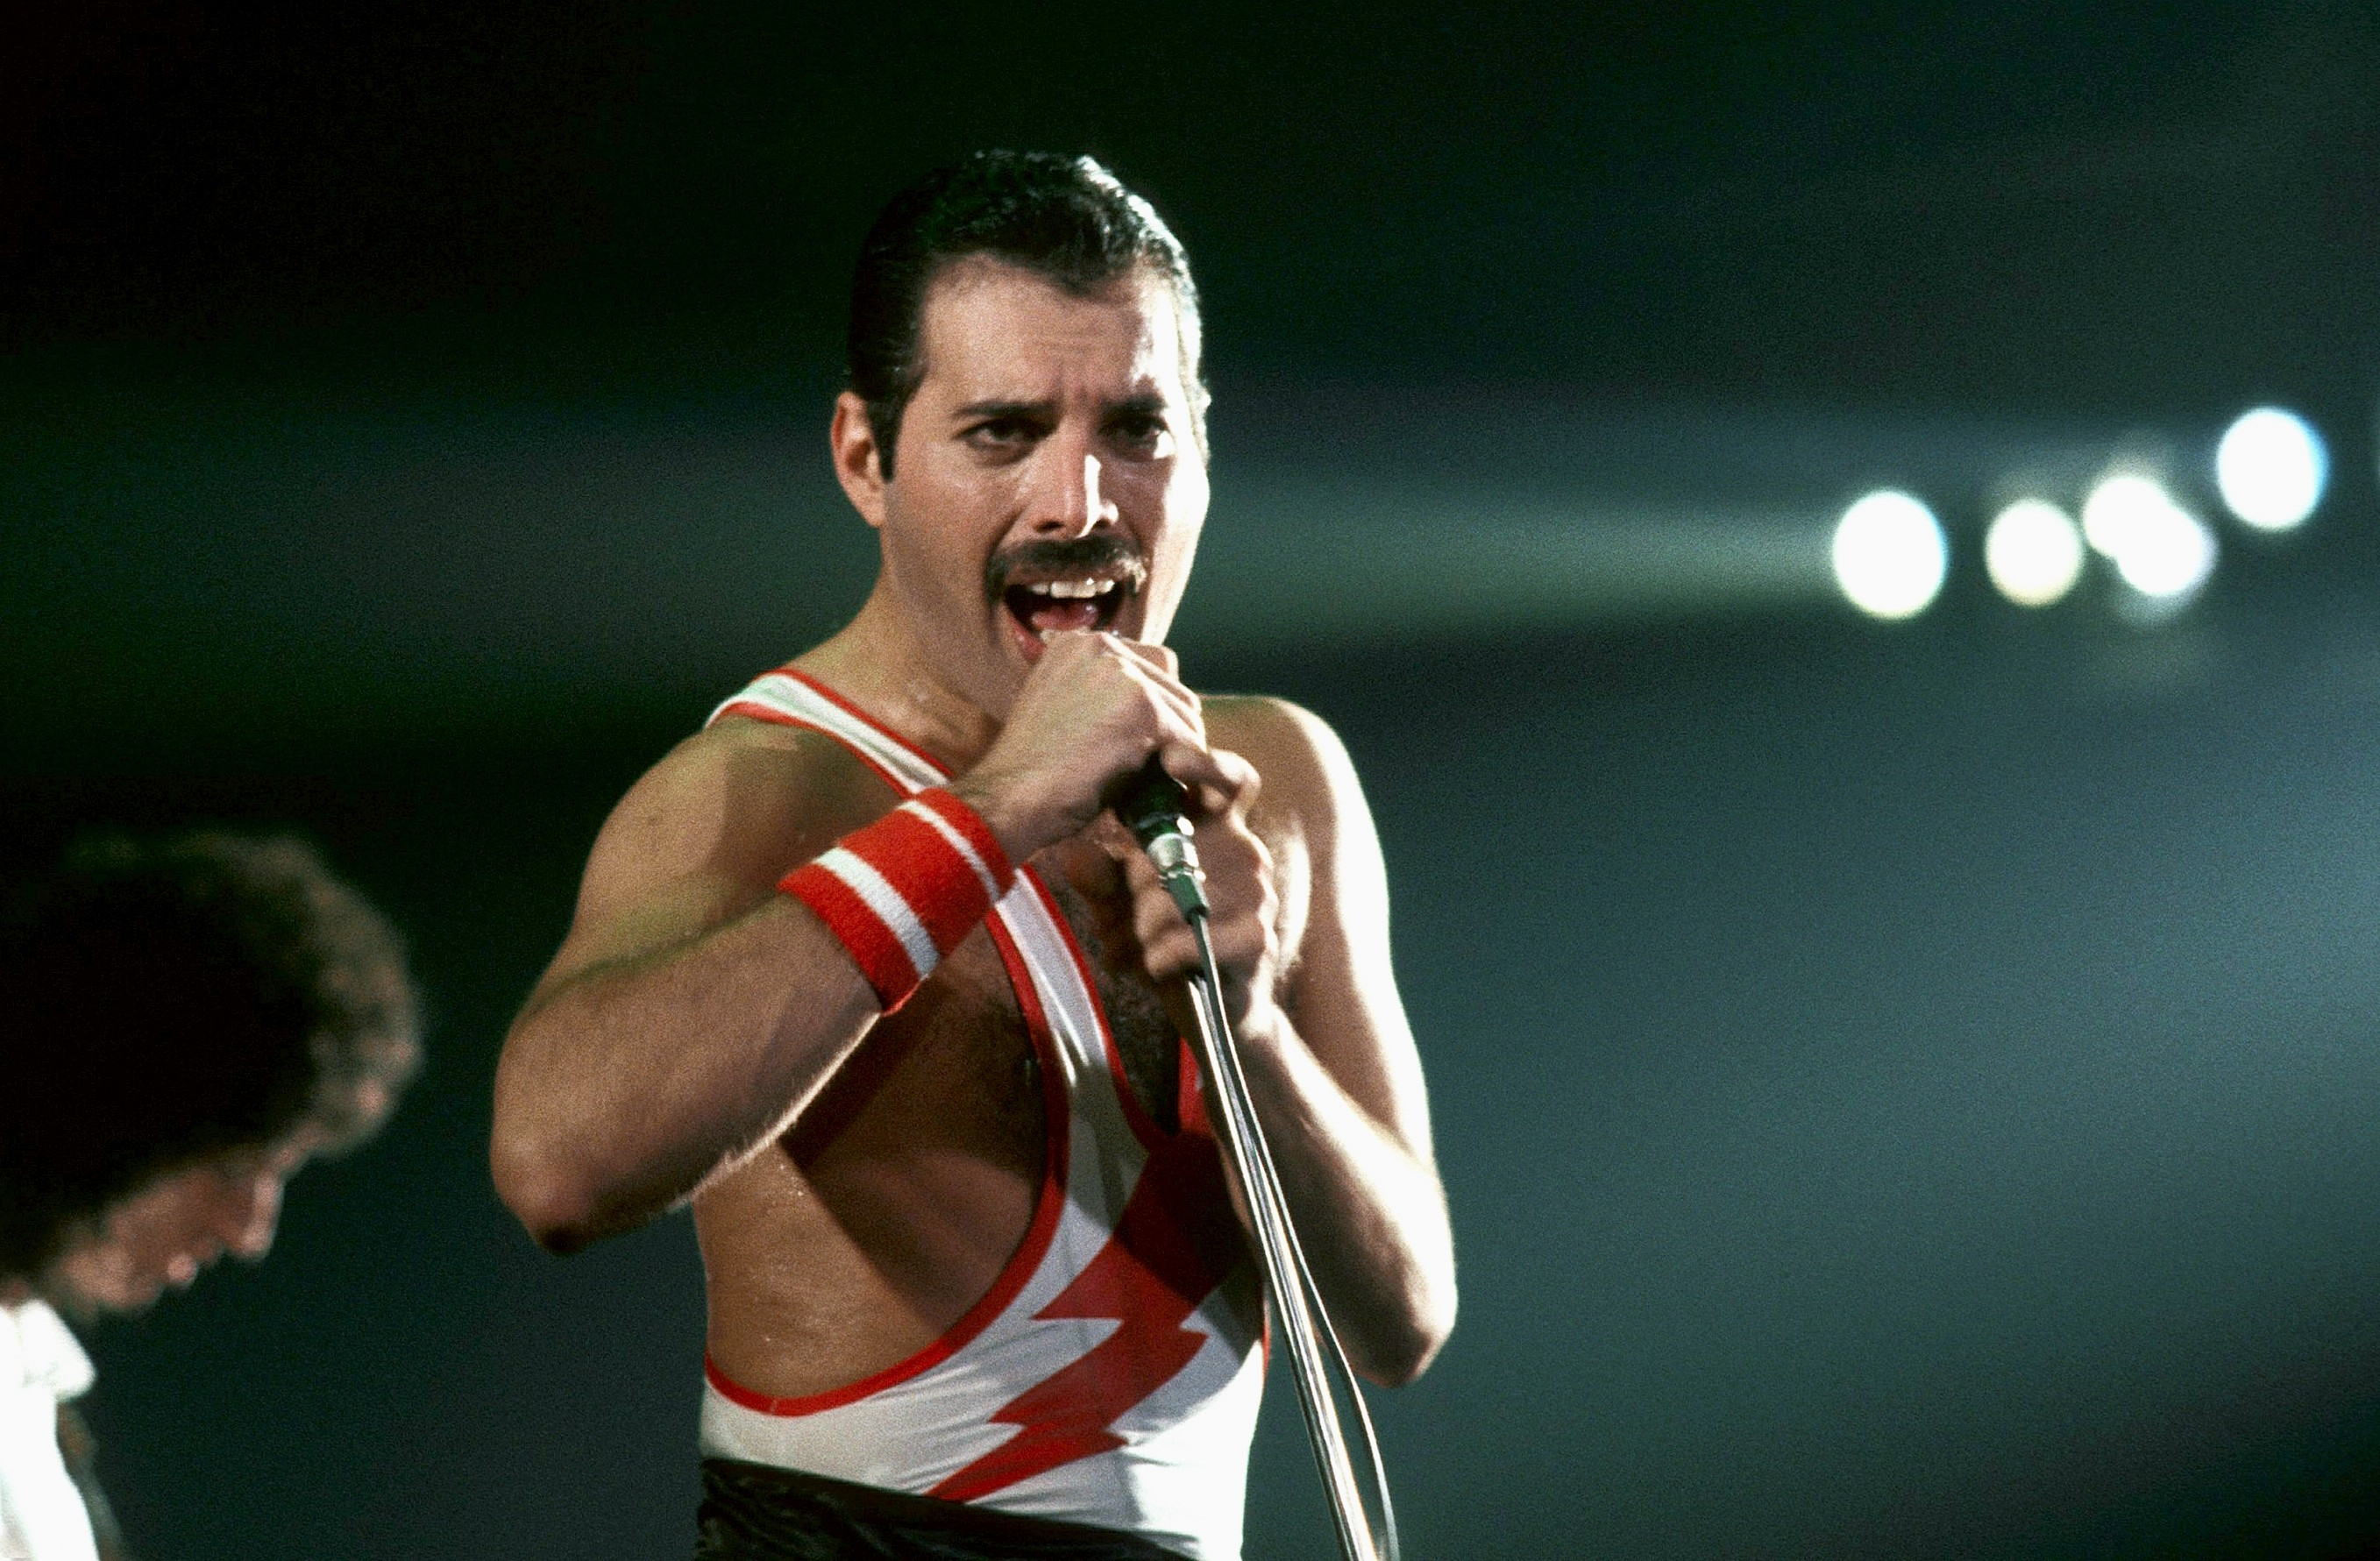 Freddie Mercury facts